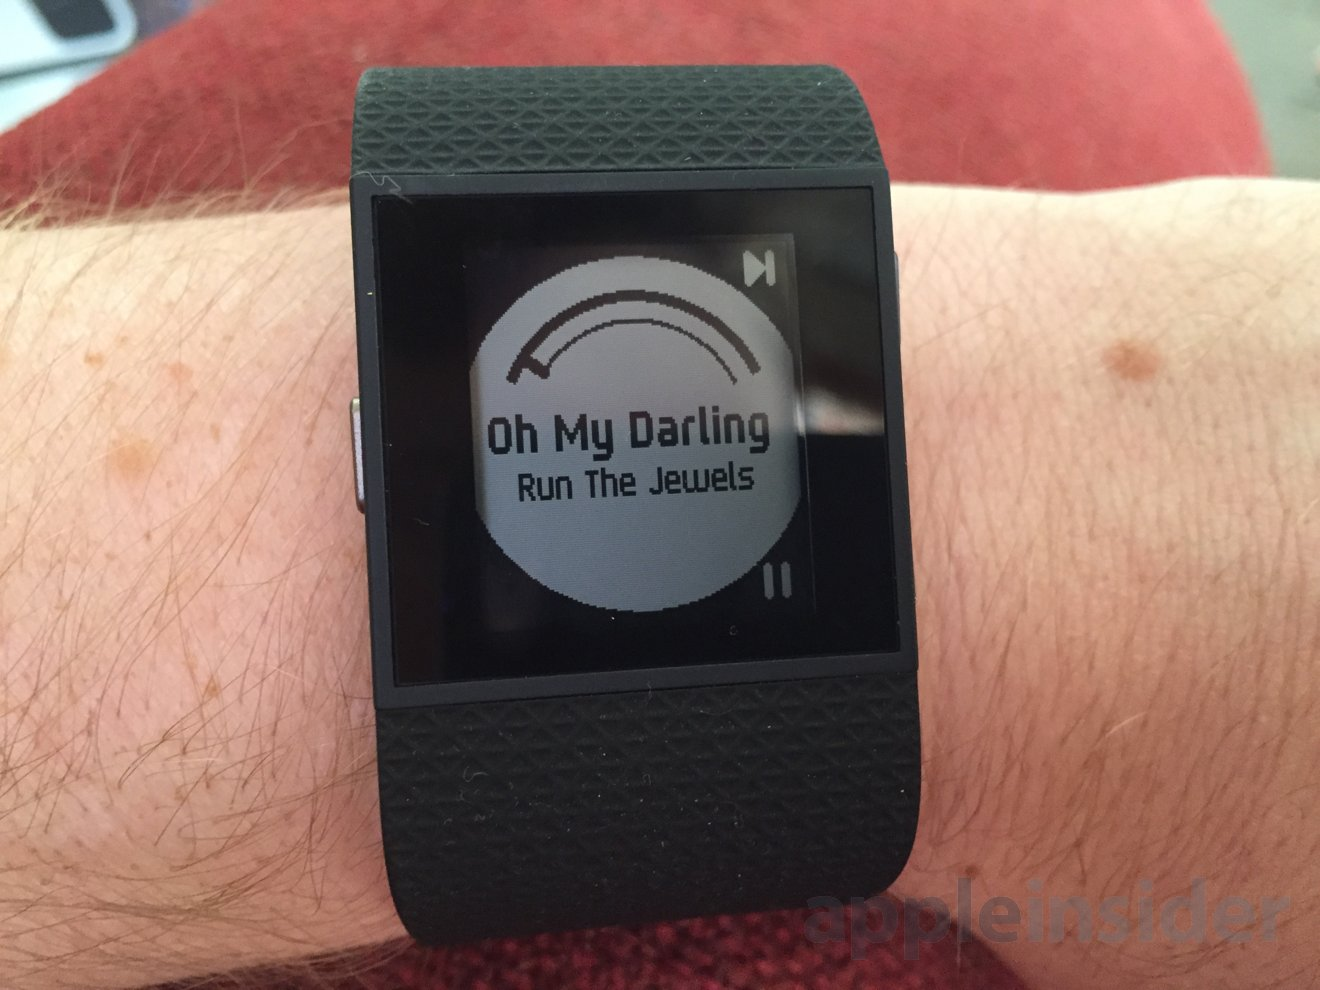 First look: Fitbit Surge, a fitness tracking, heart rate ...